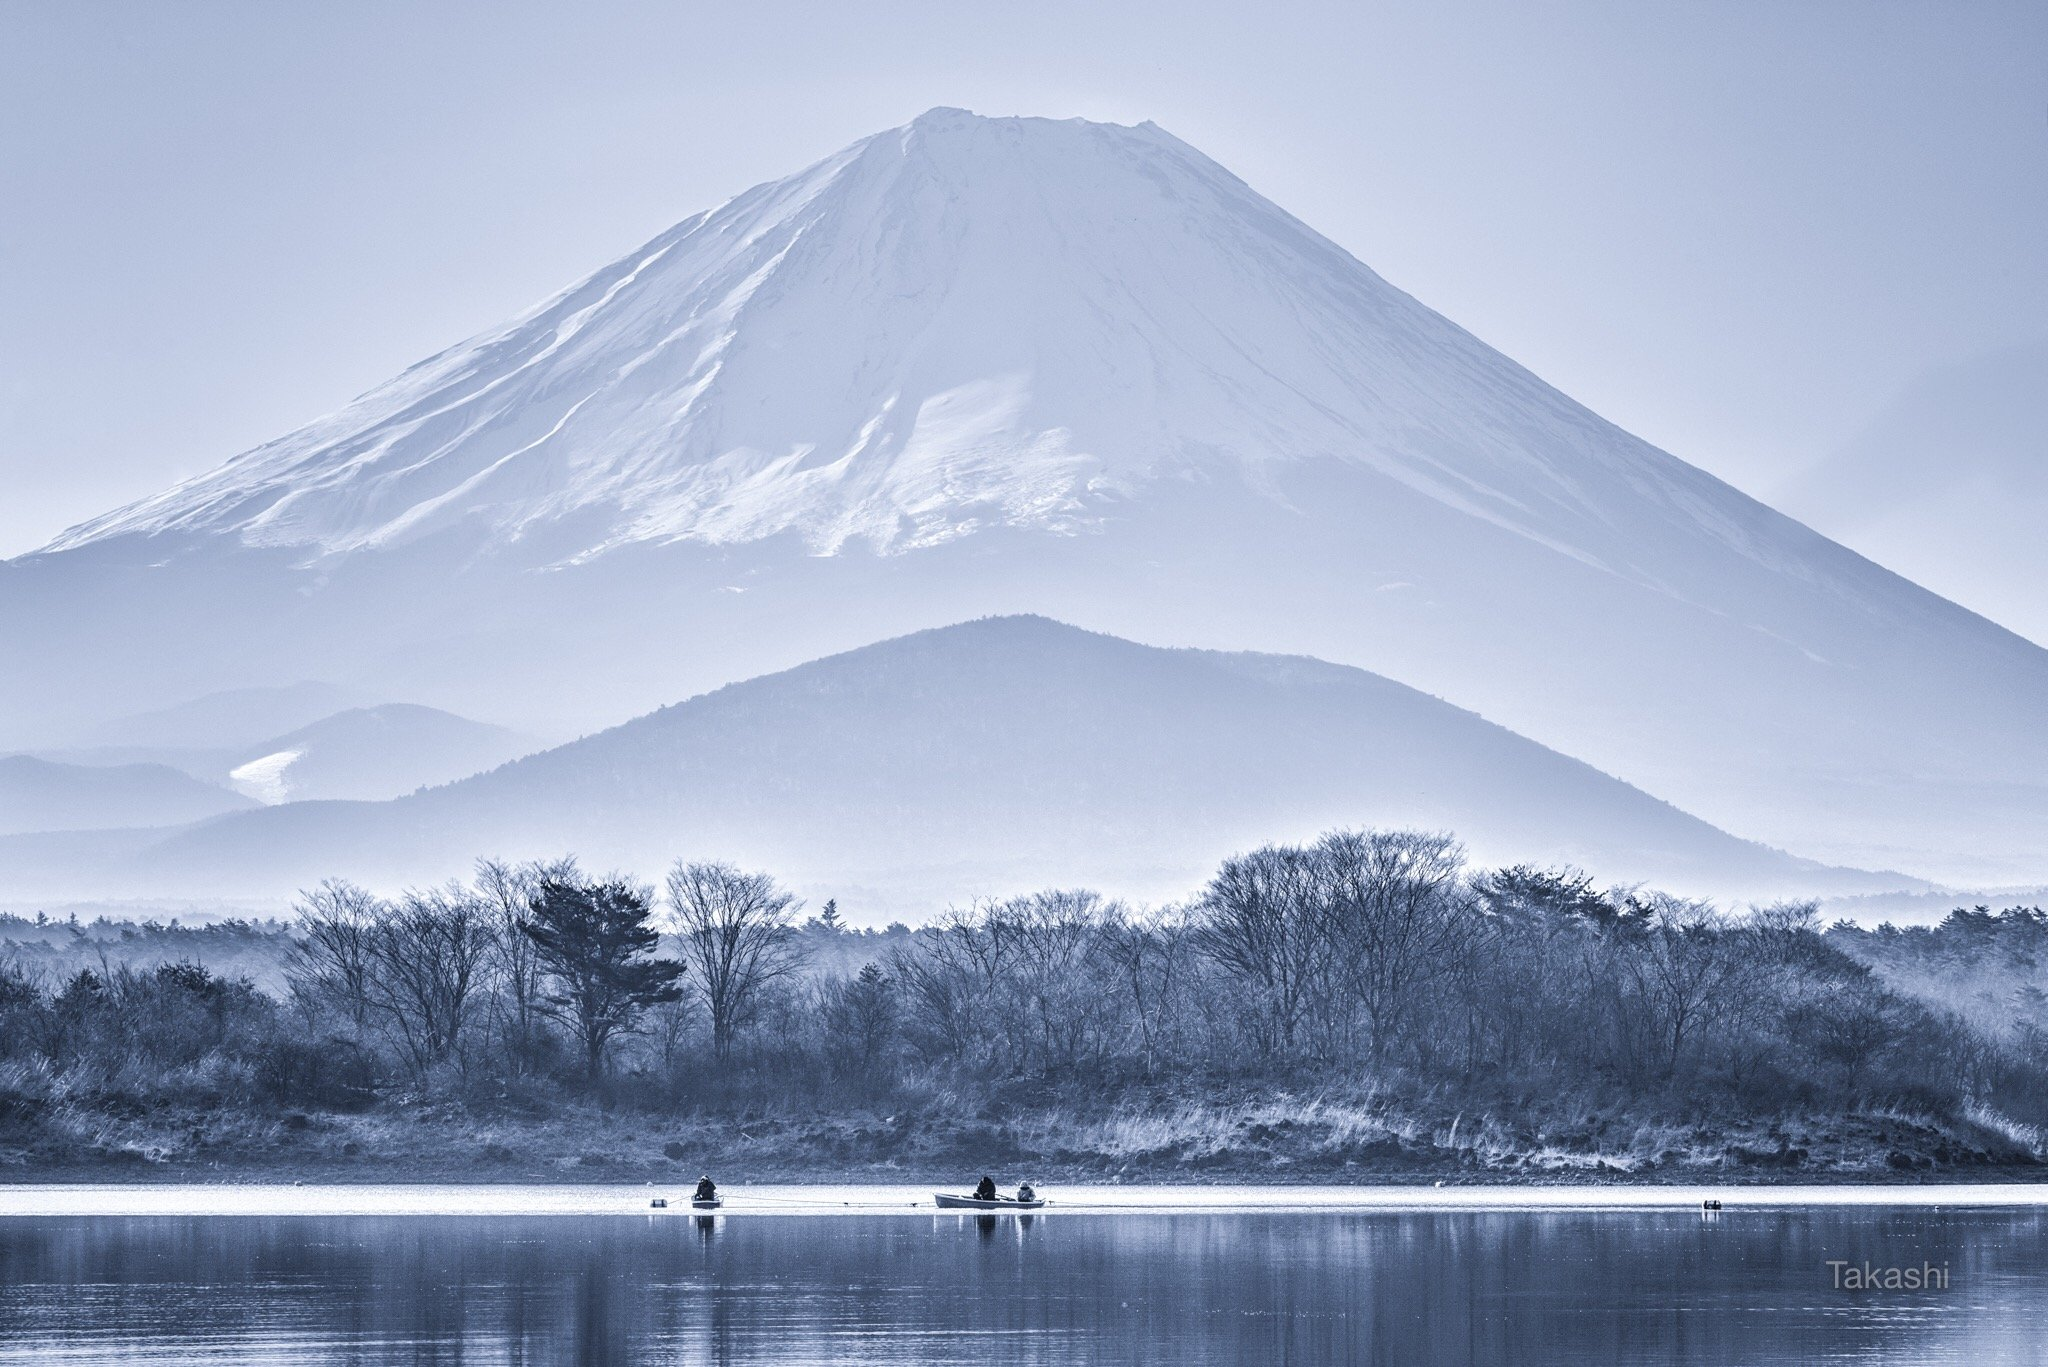 Fuji,mountain,tree,lake,boat,fishing,Japan,snow,landscape,fisherman,blue, Takashi